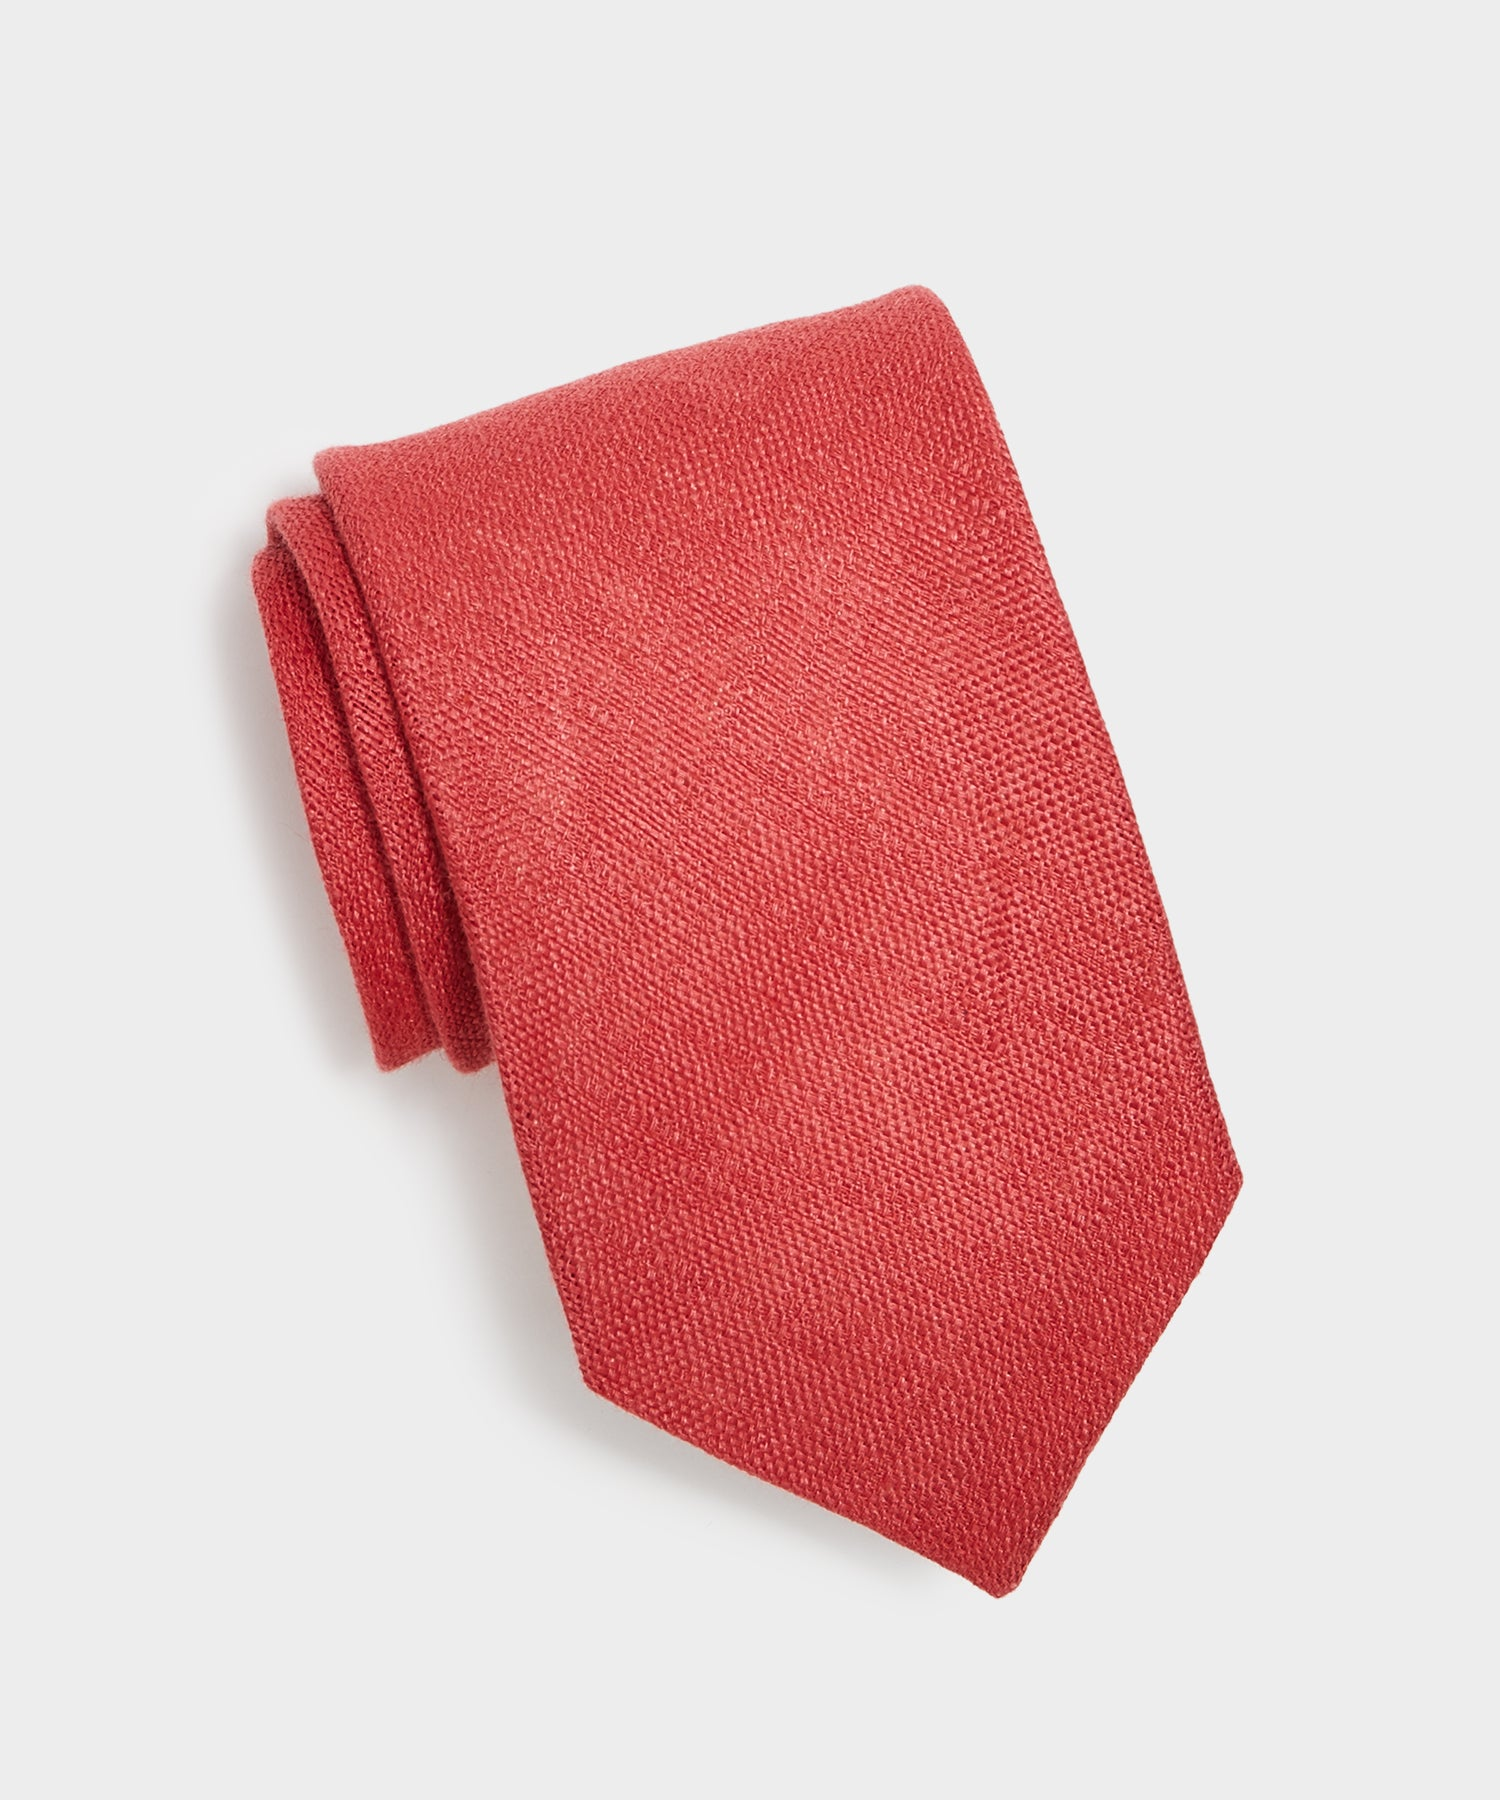 Drake's Textured Linen Tie in Red